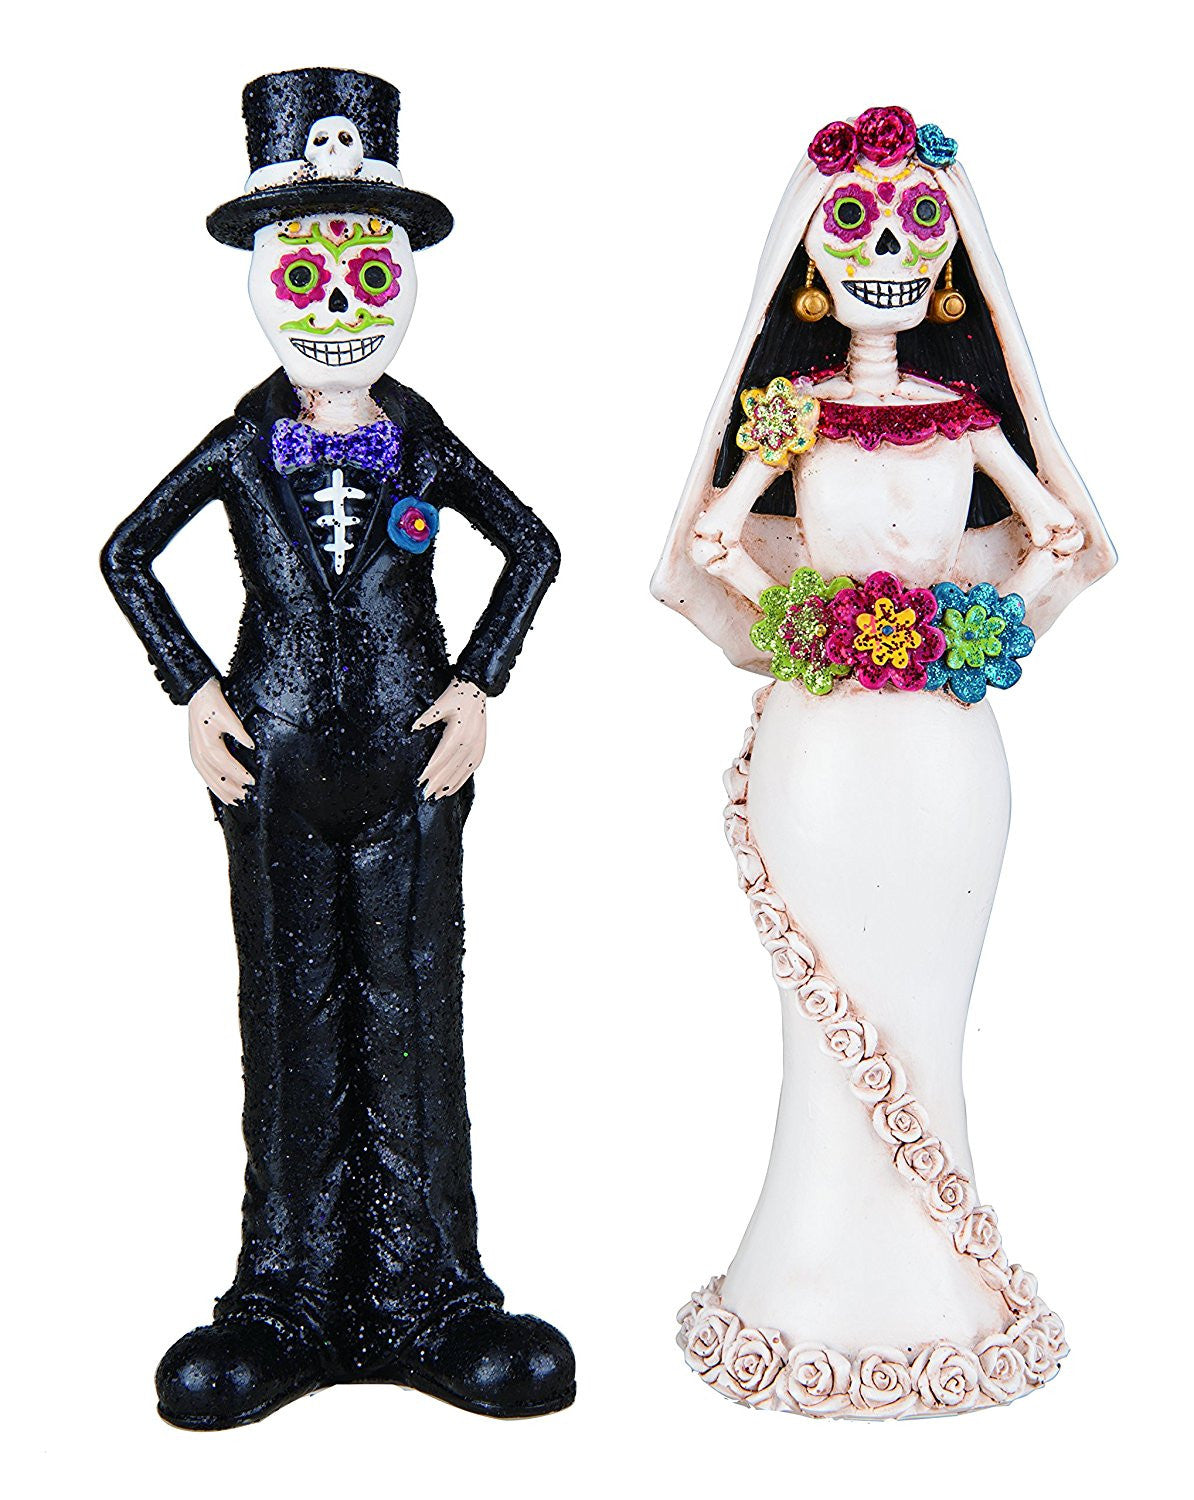 Standing Skeleton Day of the Dead Bride and Groom Couple Colorful